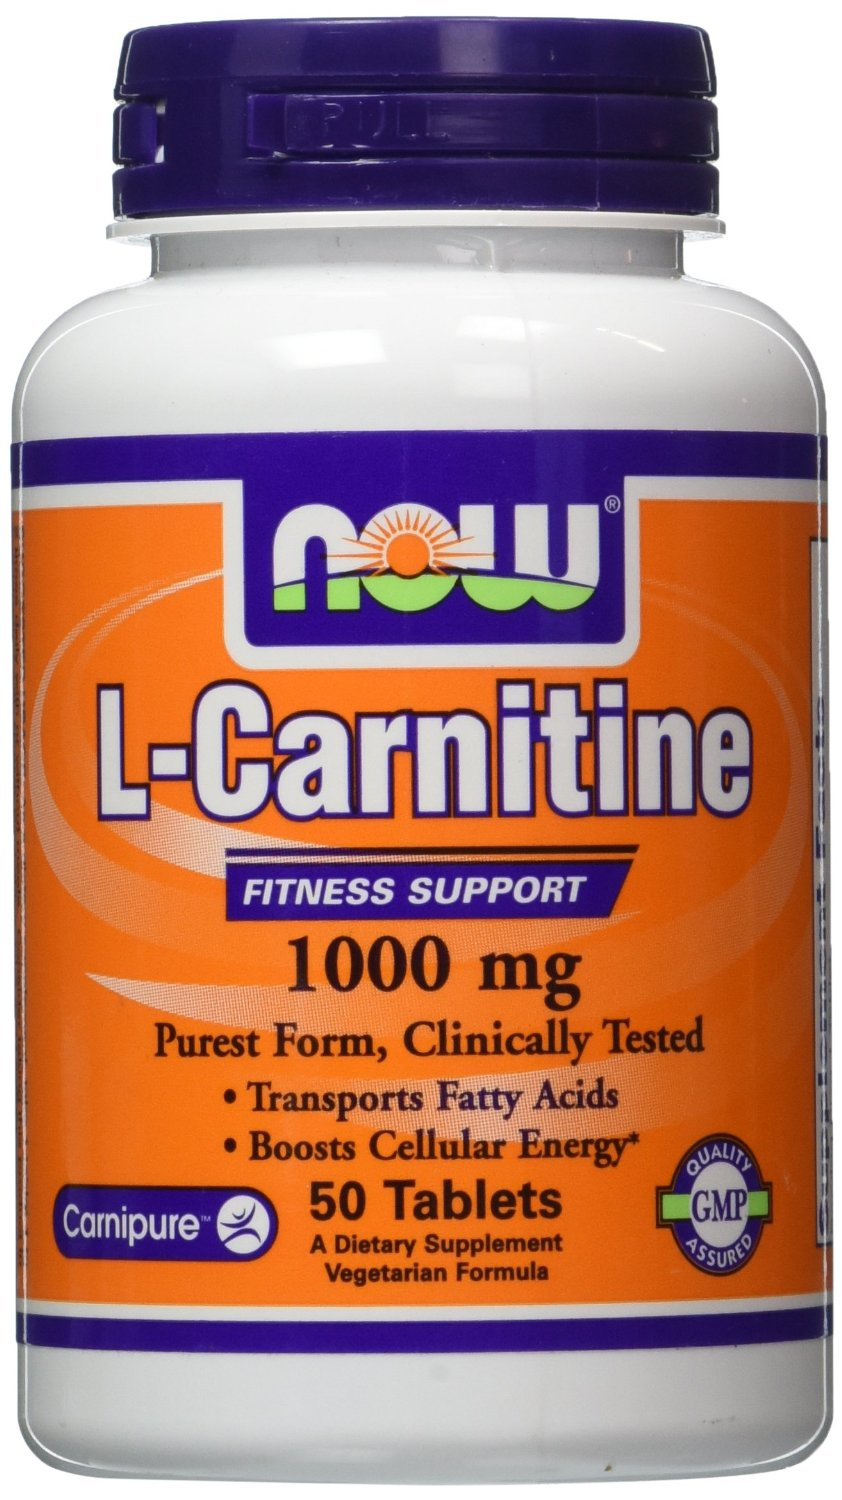 L-Carnitine 1000 mg - 50 Tablets